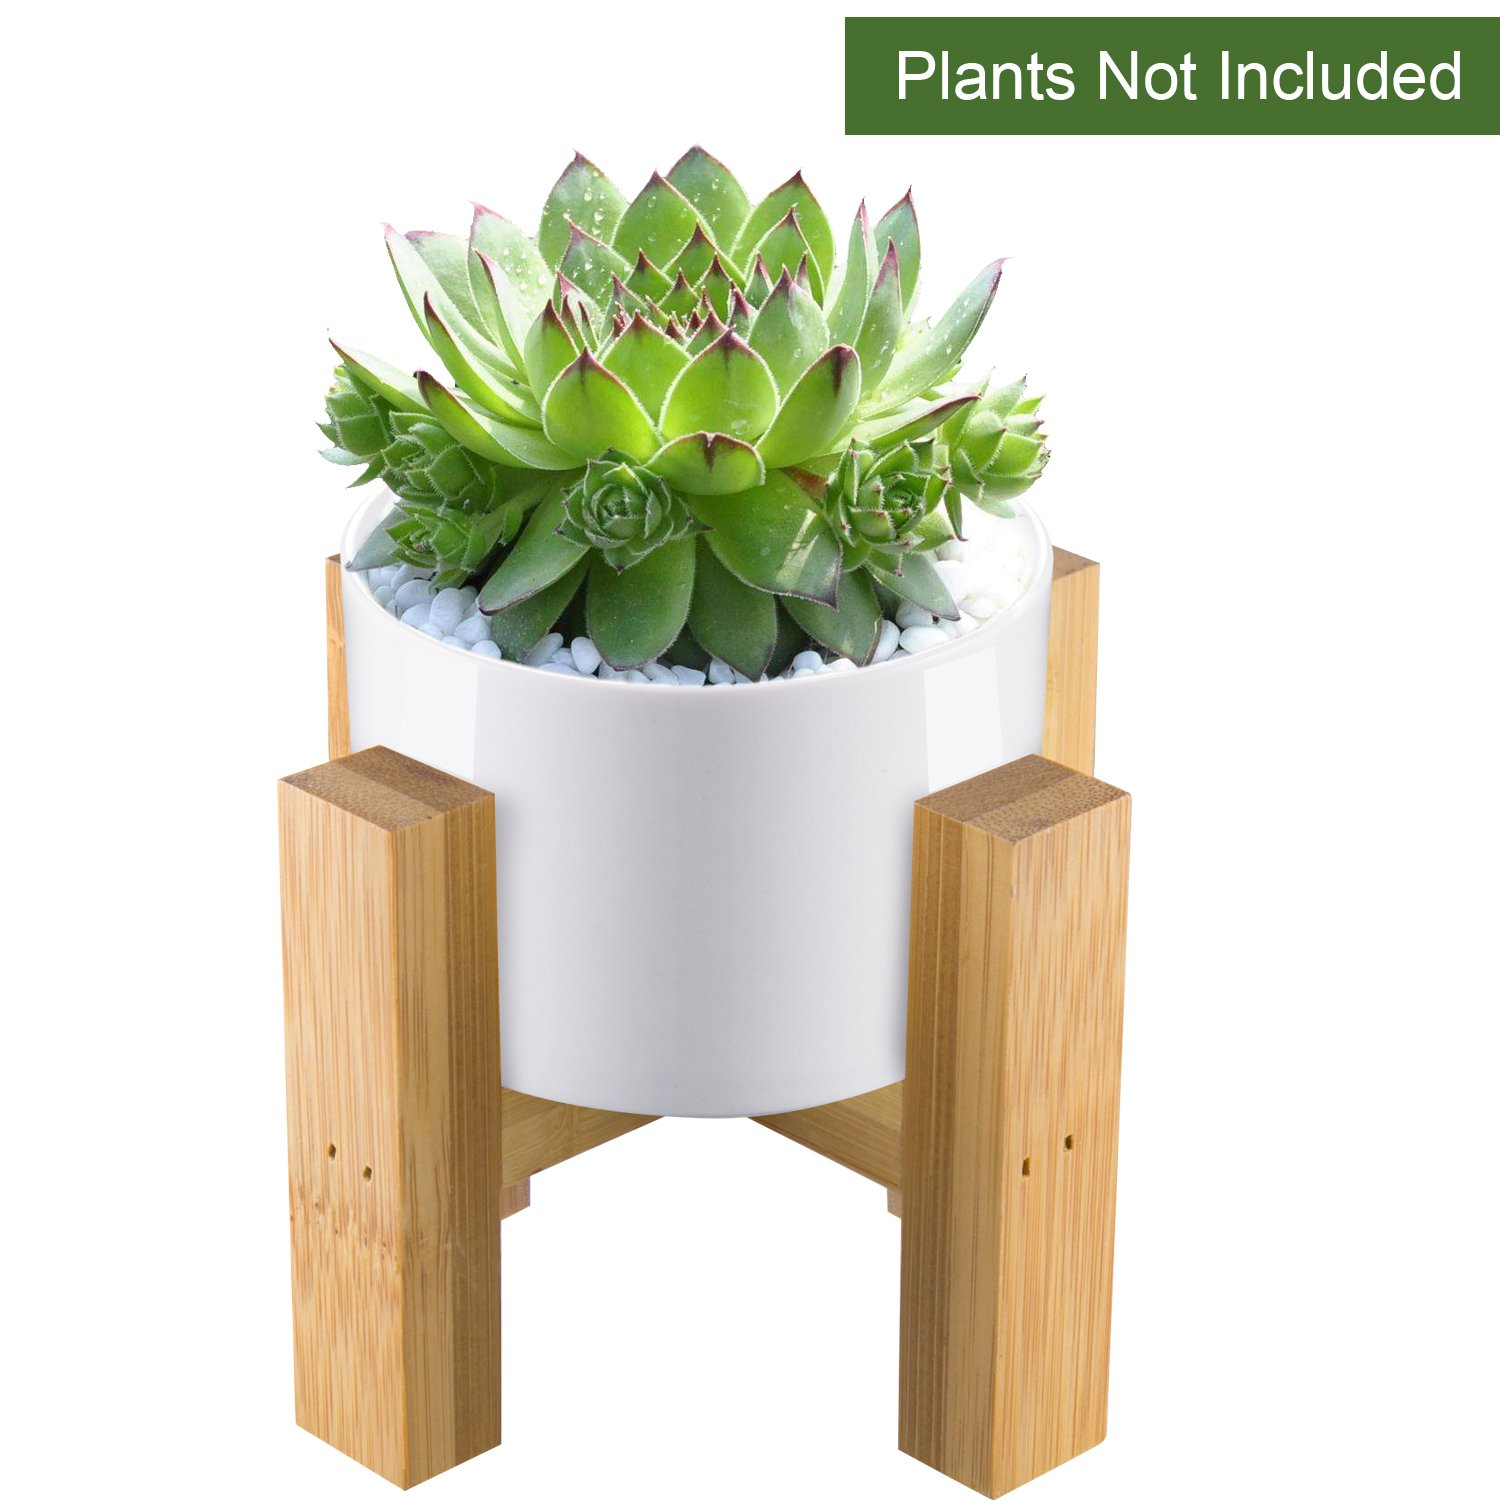 CUUCOR Mid Century Modern White Round Ceramic Small Succulent Planter Pot with Bamboo Stand, 3 Inch Indoor Plant Holder for Succulent Plant/Mini Cactus/Small Artificial Flowers(Planter + Stand) by CUUCOR